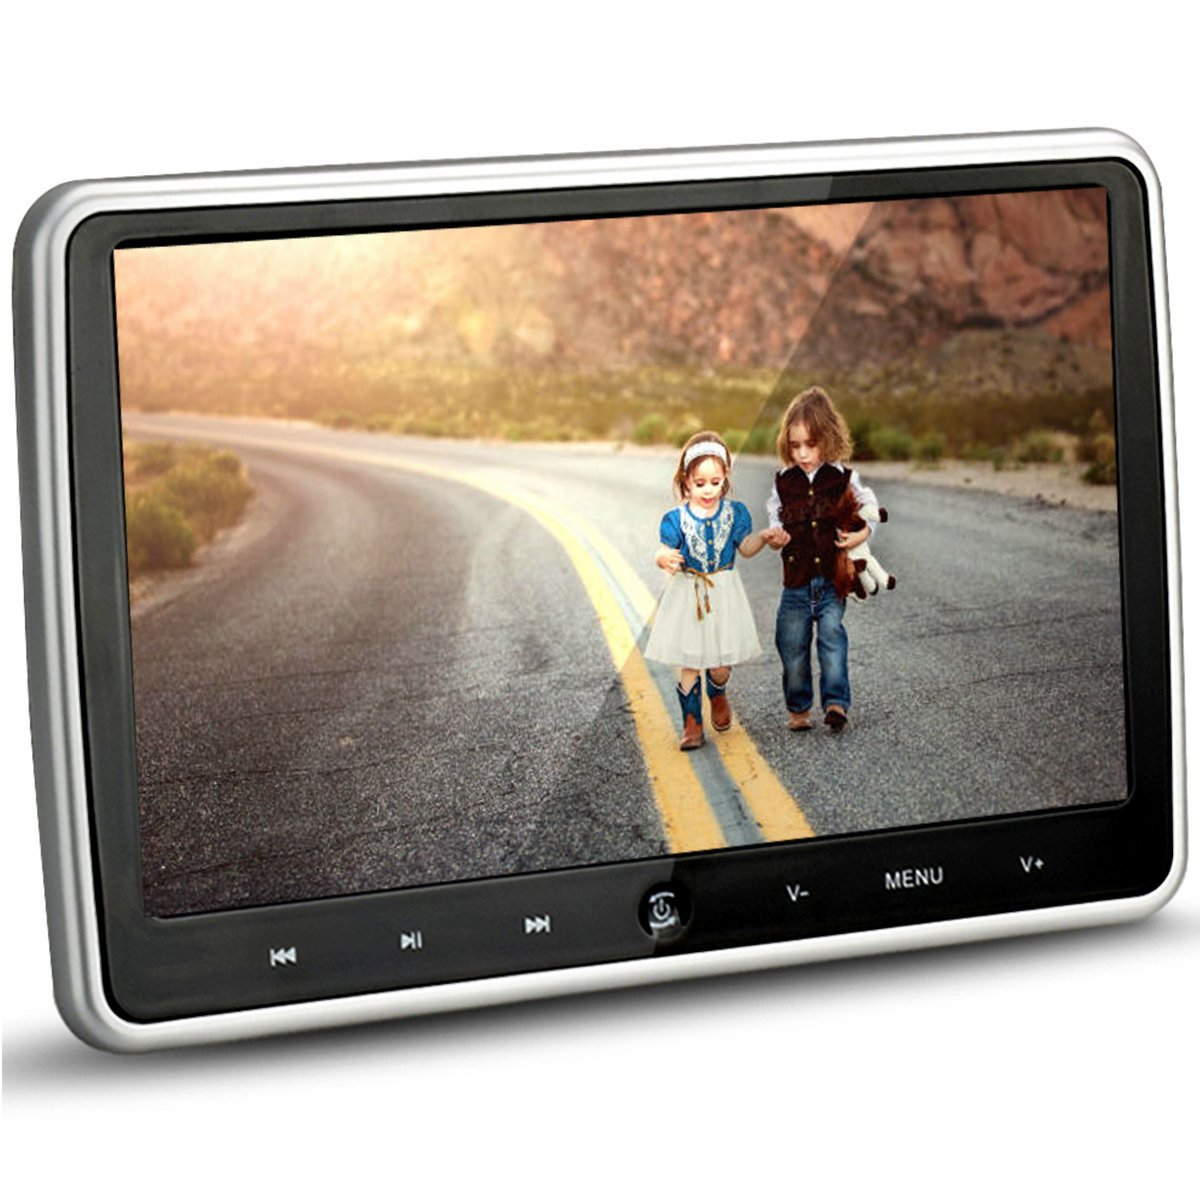 Alondy 10.1 Inch HD 1024 x 600 HDMI USB SD IR/FM Ultra Thin Digital Touch Key LCD Screen Car DVD Player Headrest Monitor